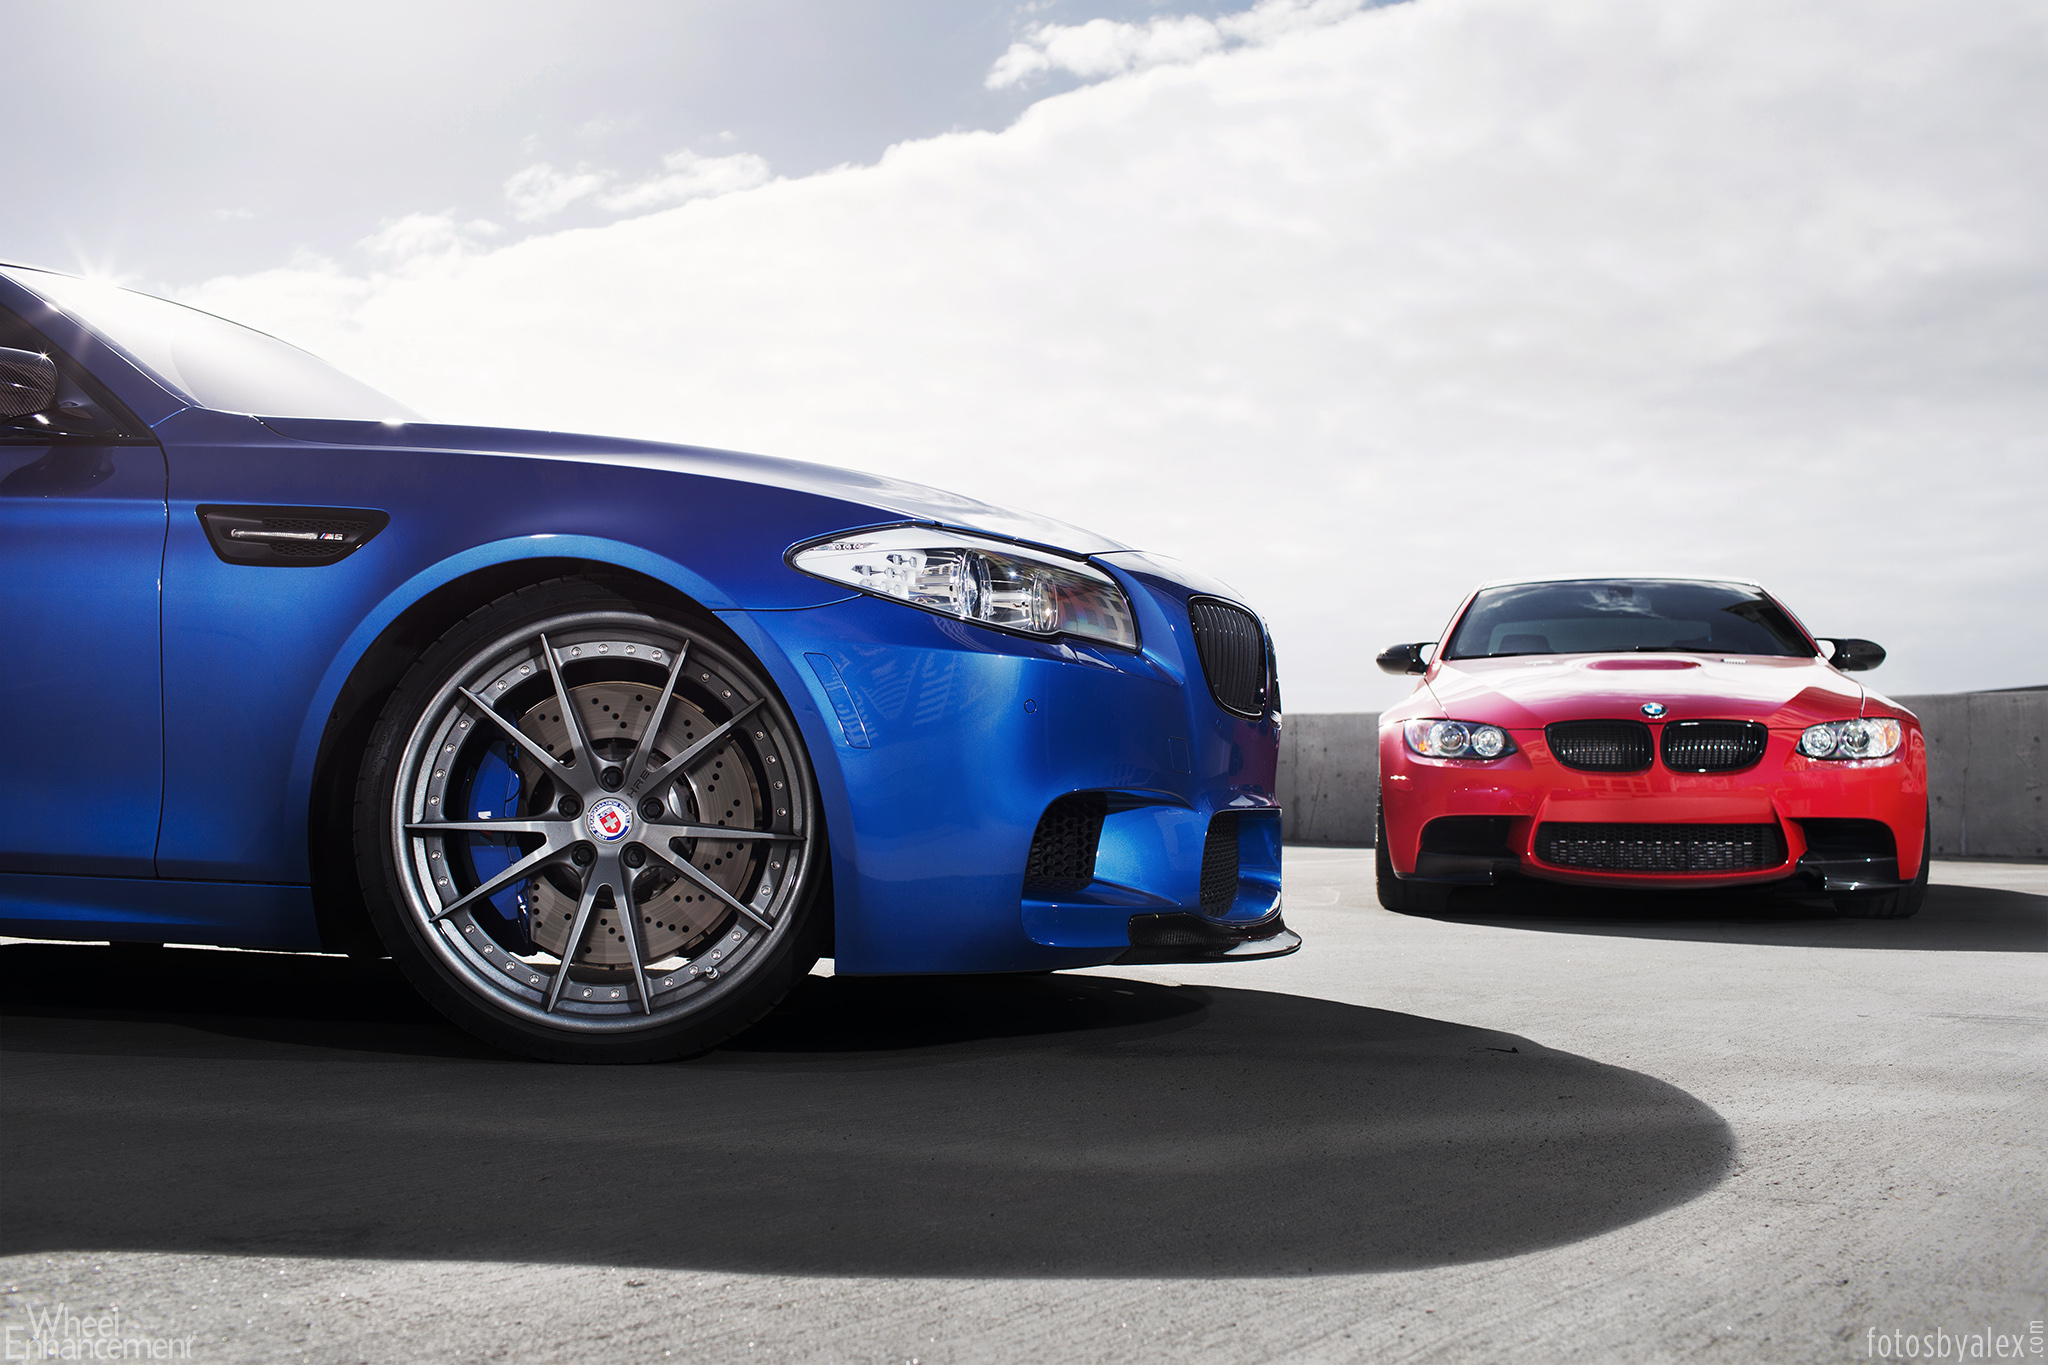 M Brothers Pose Together: BMW M3 and M5 Riding on HRE ...